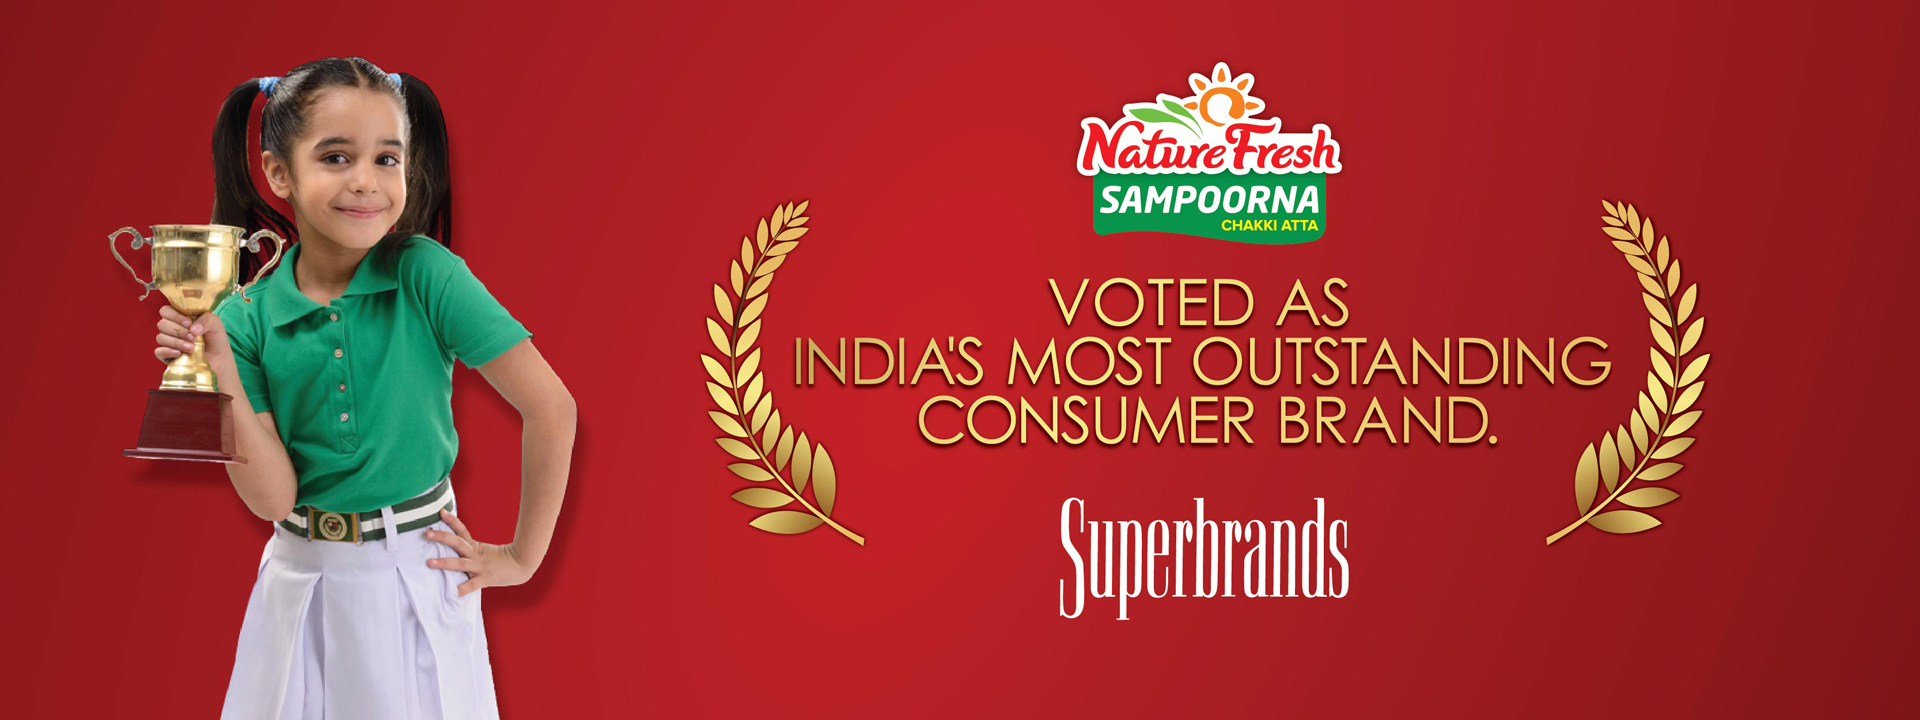 Nature Fresh Sampurna Chakki Atta Voted as India's most outstanding Consumer brand